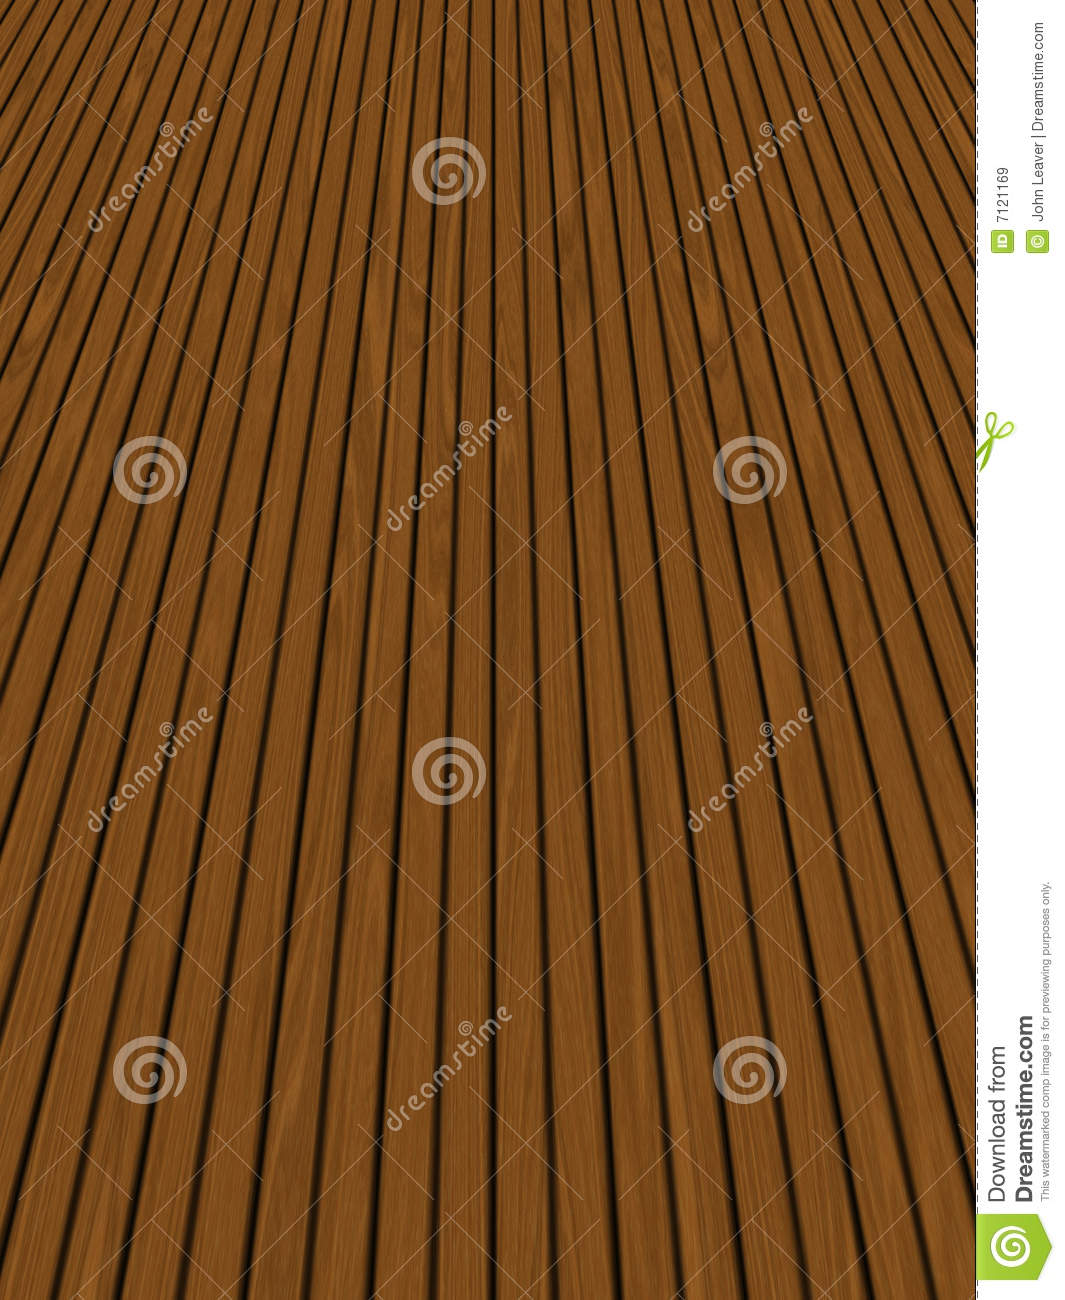 Decking Panels Wooden Decking Panels Stock Illustration Illustration Of